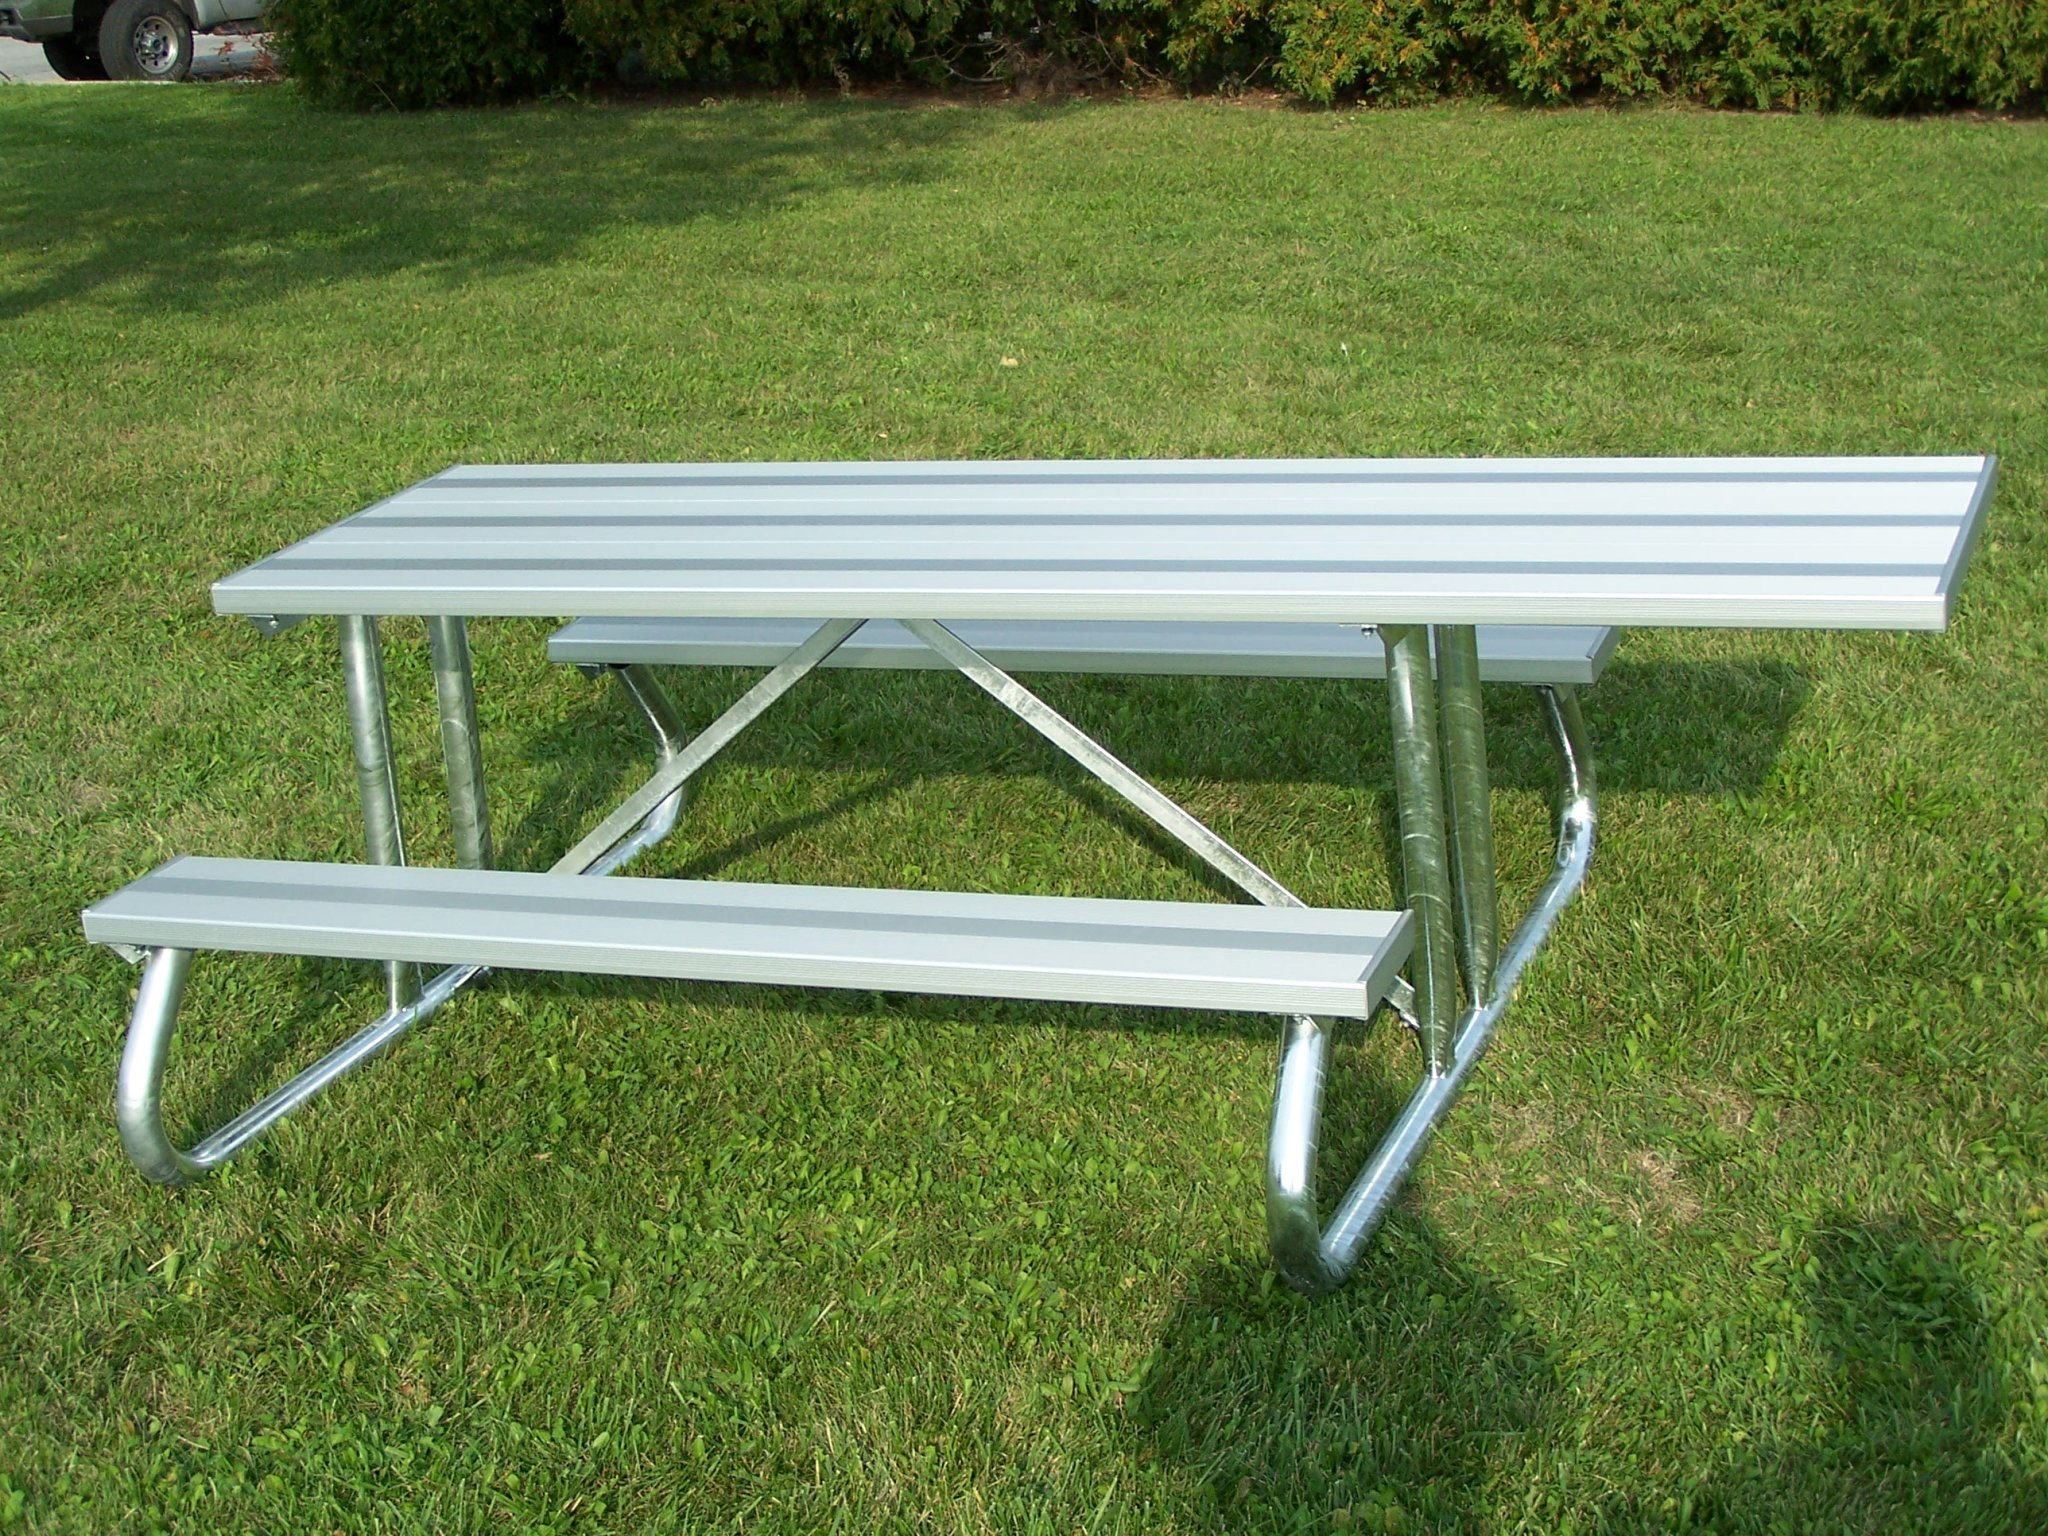 Aluminum Picnic Tables Metal Picnic Tables National Recreation - 6 sided picnic table